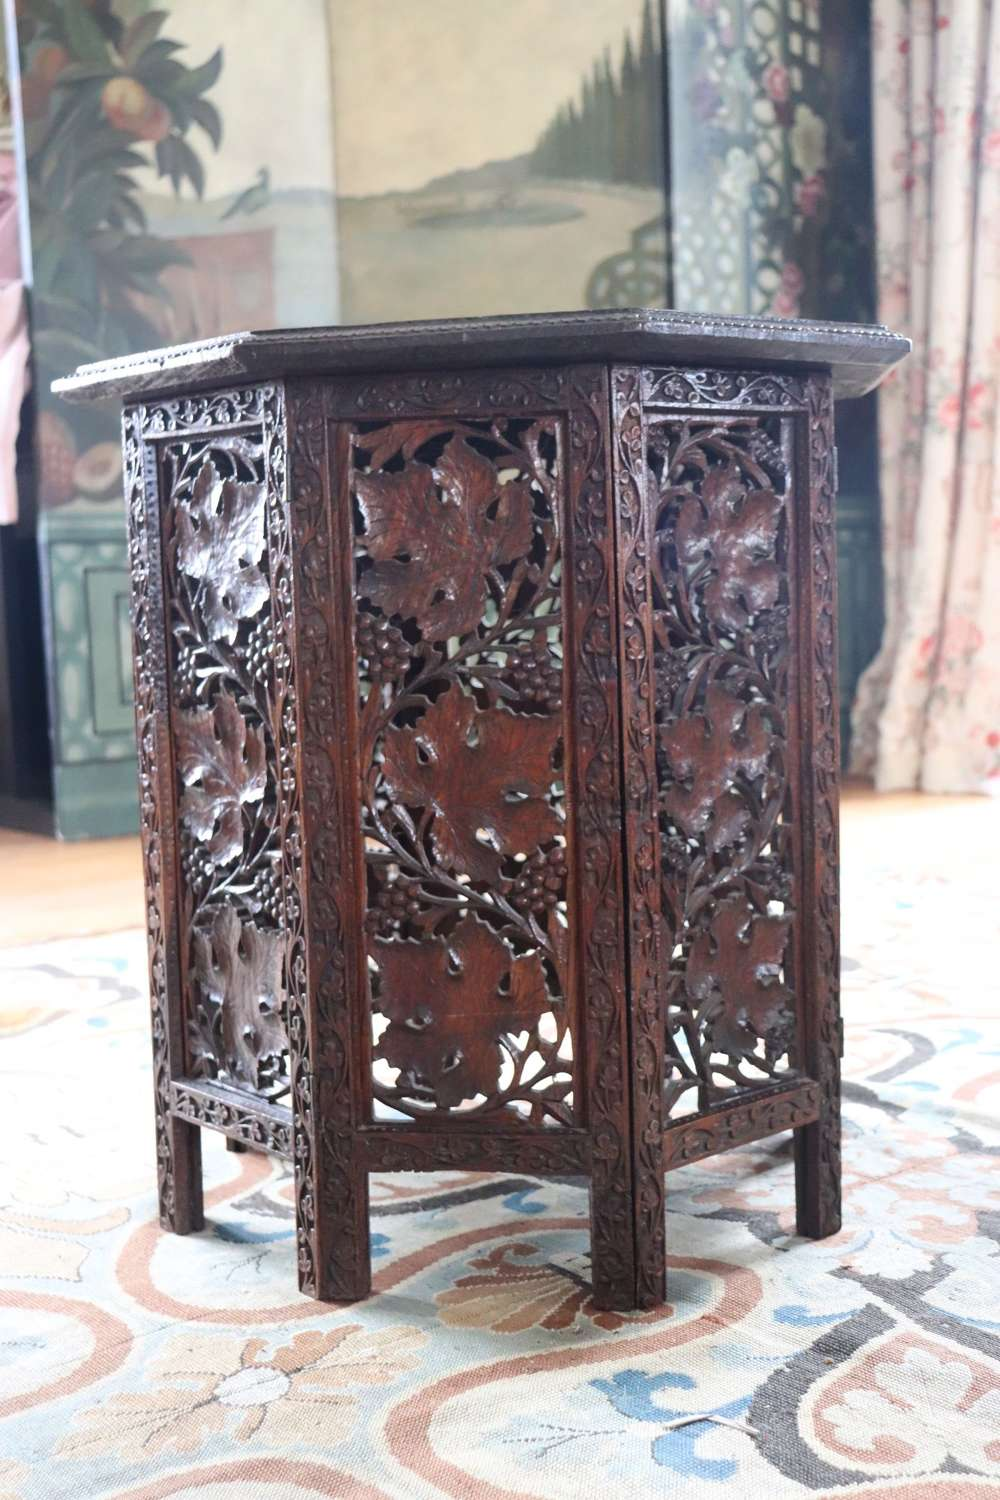 An octagonal Moorish table with carved foliage